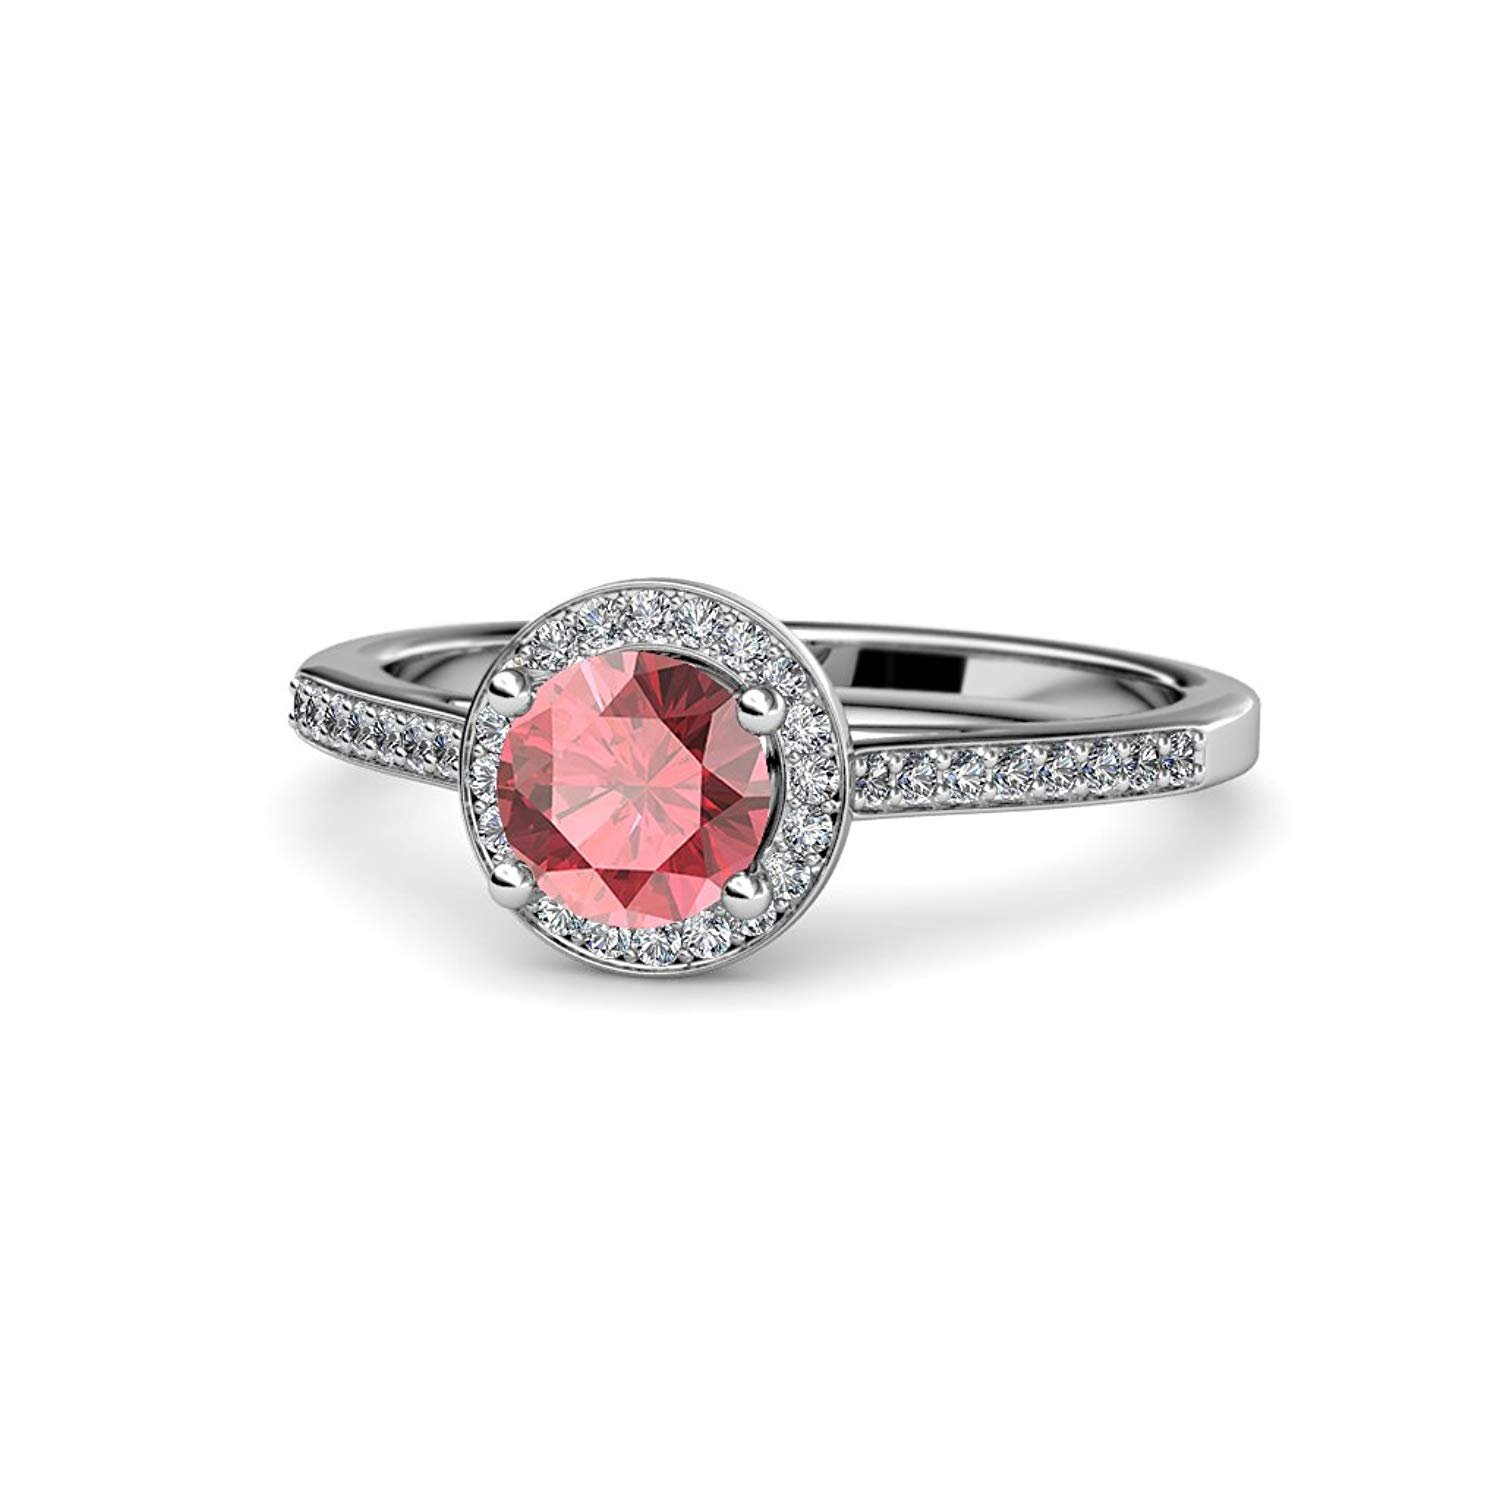 Pink Tourmaline and Diamond (SI2-I1, G-H) Halo Engagement Ring 1.26 ct tw in 14K White Gold.size 5.5 by TriJewels